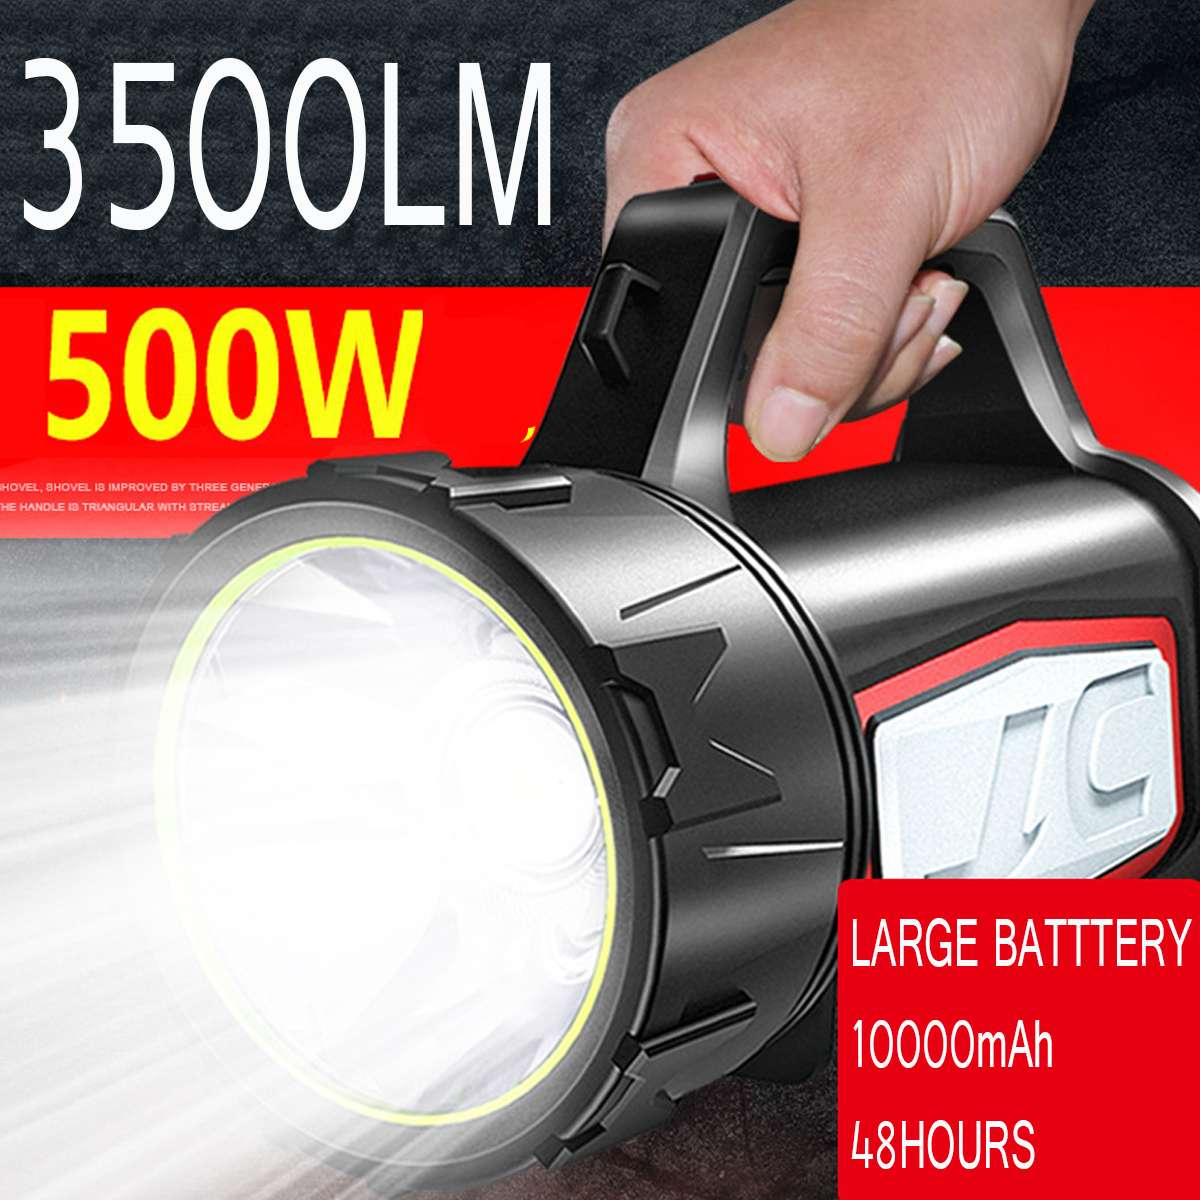 3500LM USB Rechargeable LED Work Light Flashligh Spotlight Hand Lamp Camping Lantern Searchlight for Tent Fishing Hunting